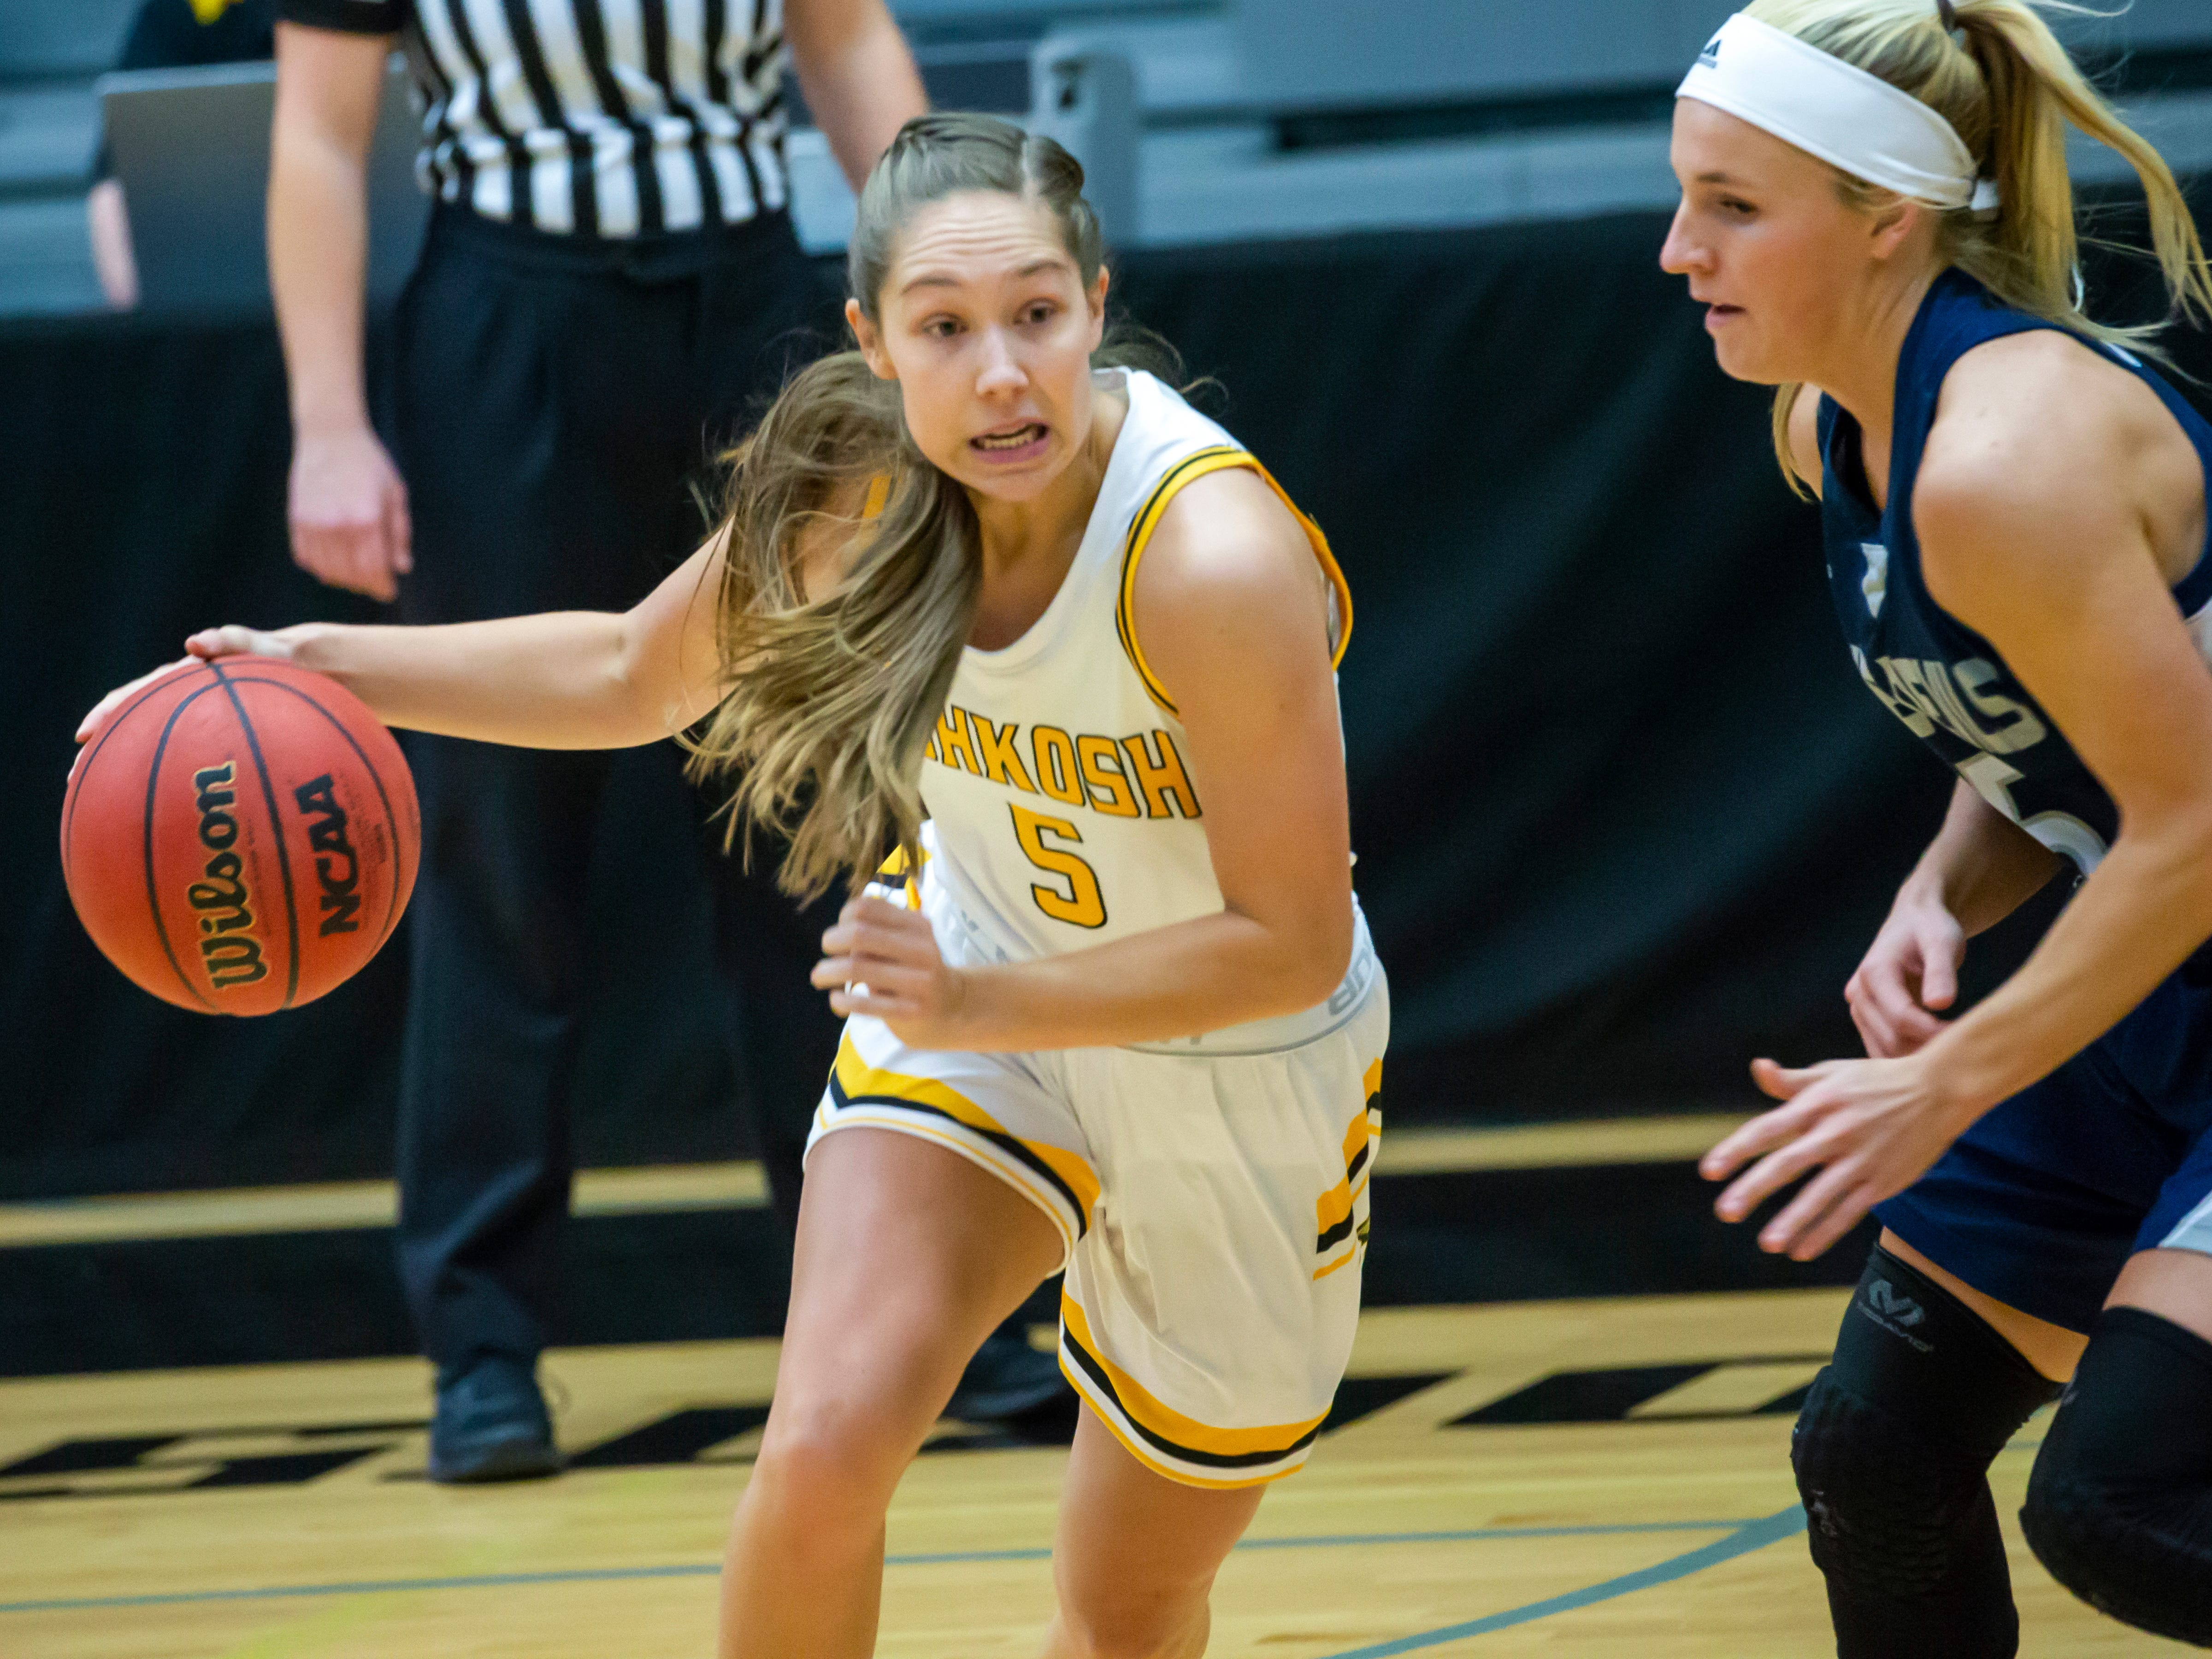 UW-Oshkosh's Chloe Pustina drives the ball around UW-Stout's Kyncaide Diedrich at the Kolf Sports Center on Saturday, January 5, 2019.